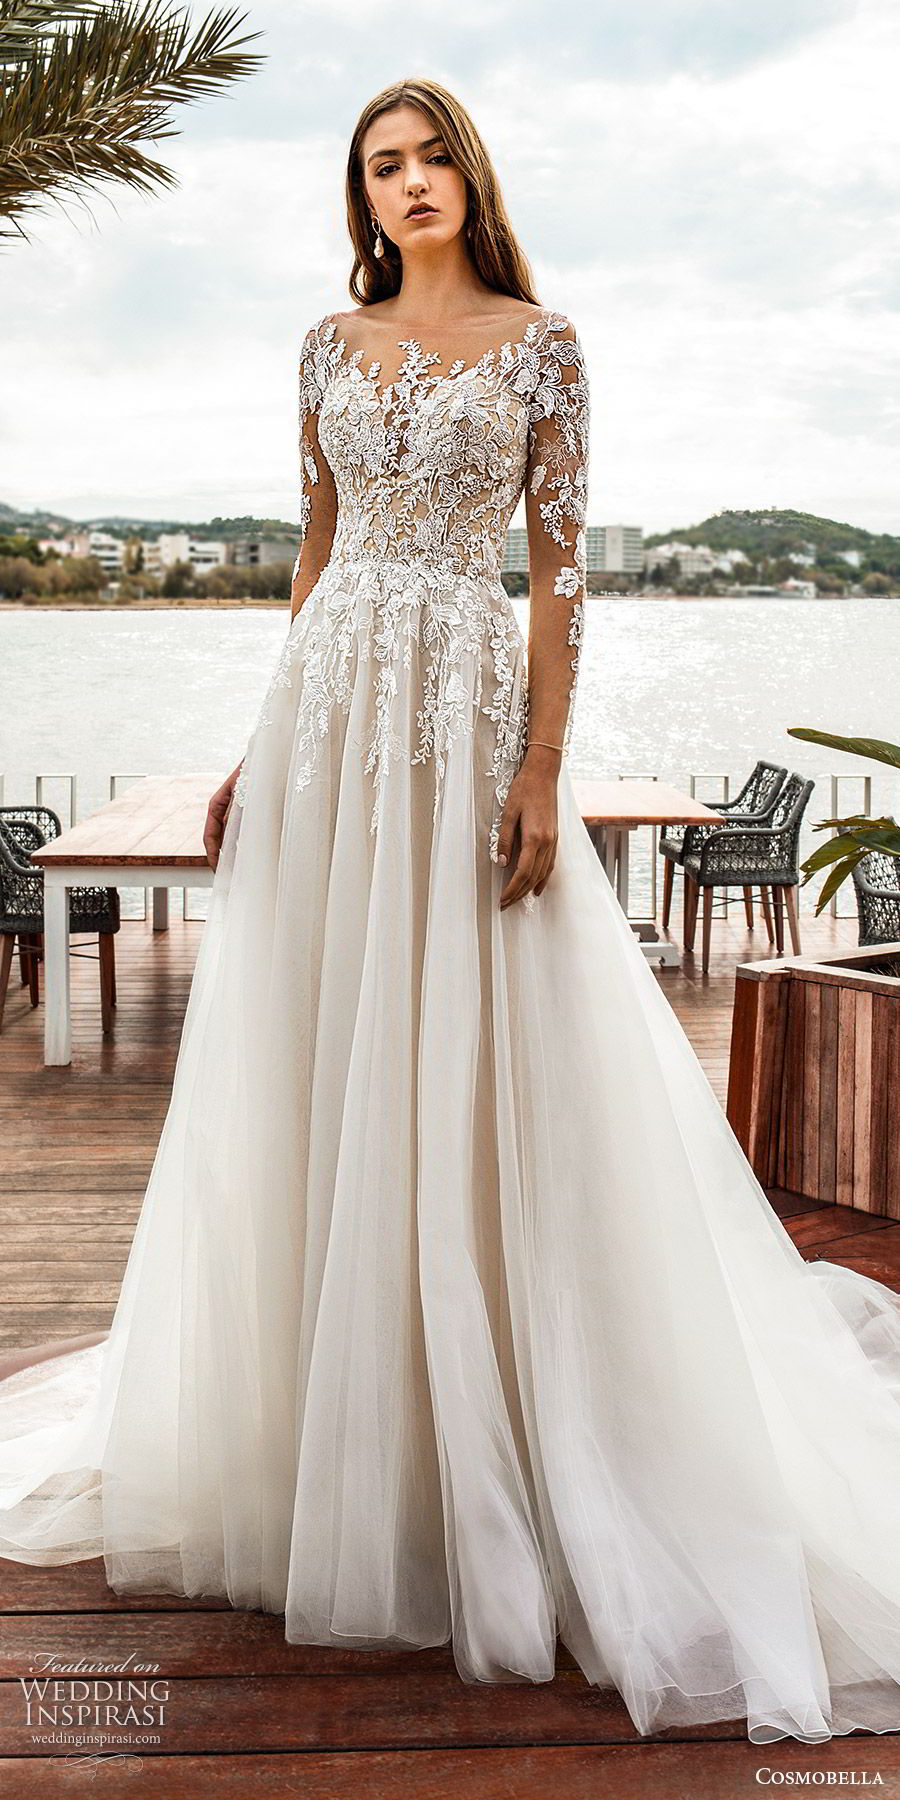 cosmobella 2020 bridal illusion long sleeves sheer bateau neck sweetheart embellished lace bodice a line ball gown wedding dress (2) elegant romantic chapel train mv